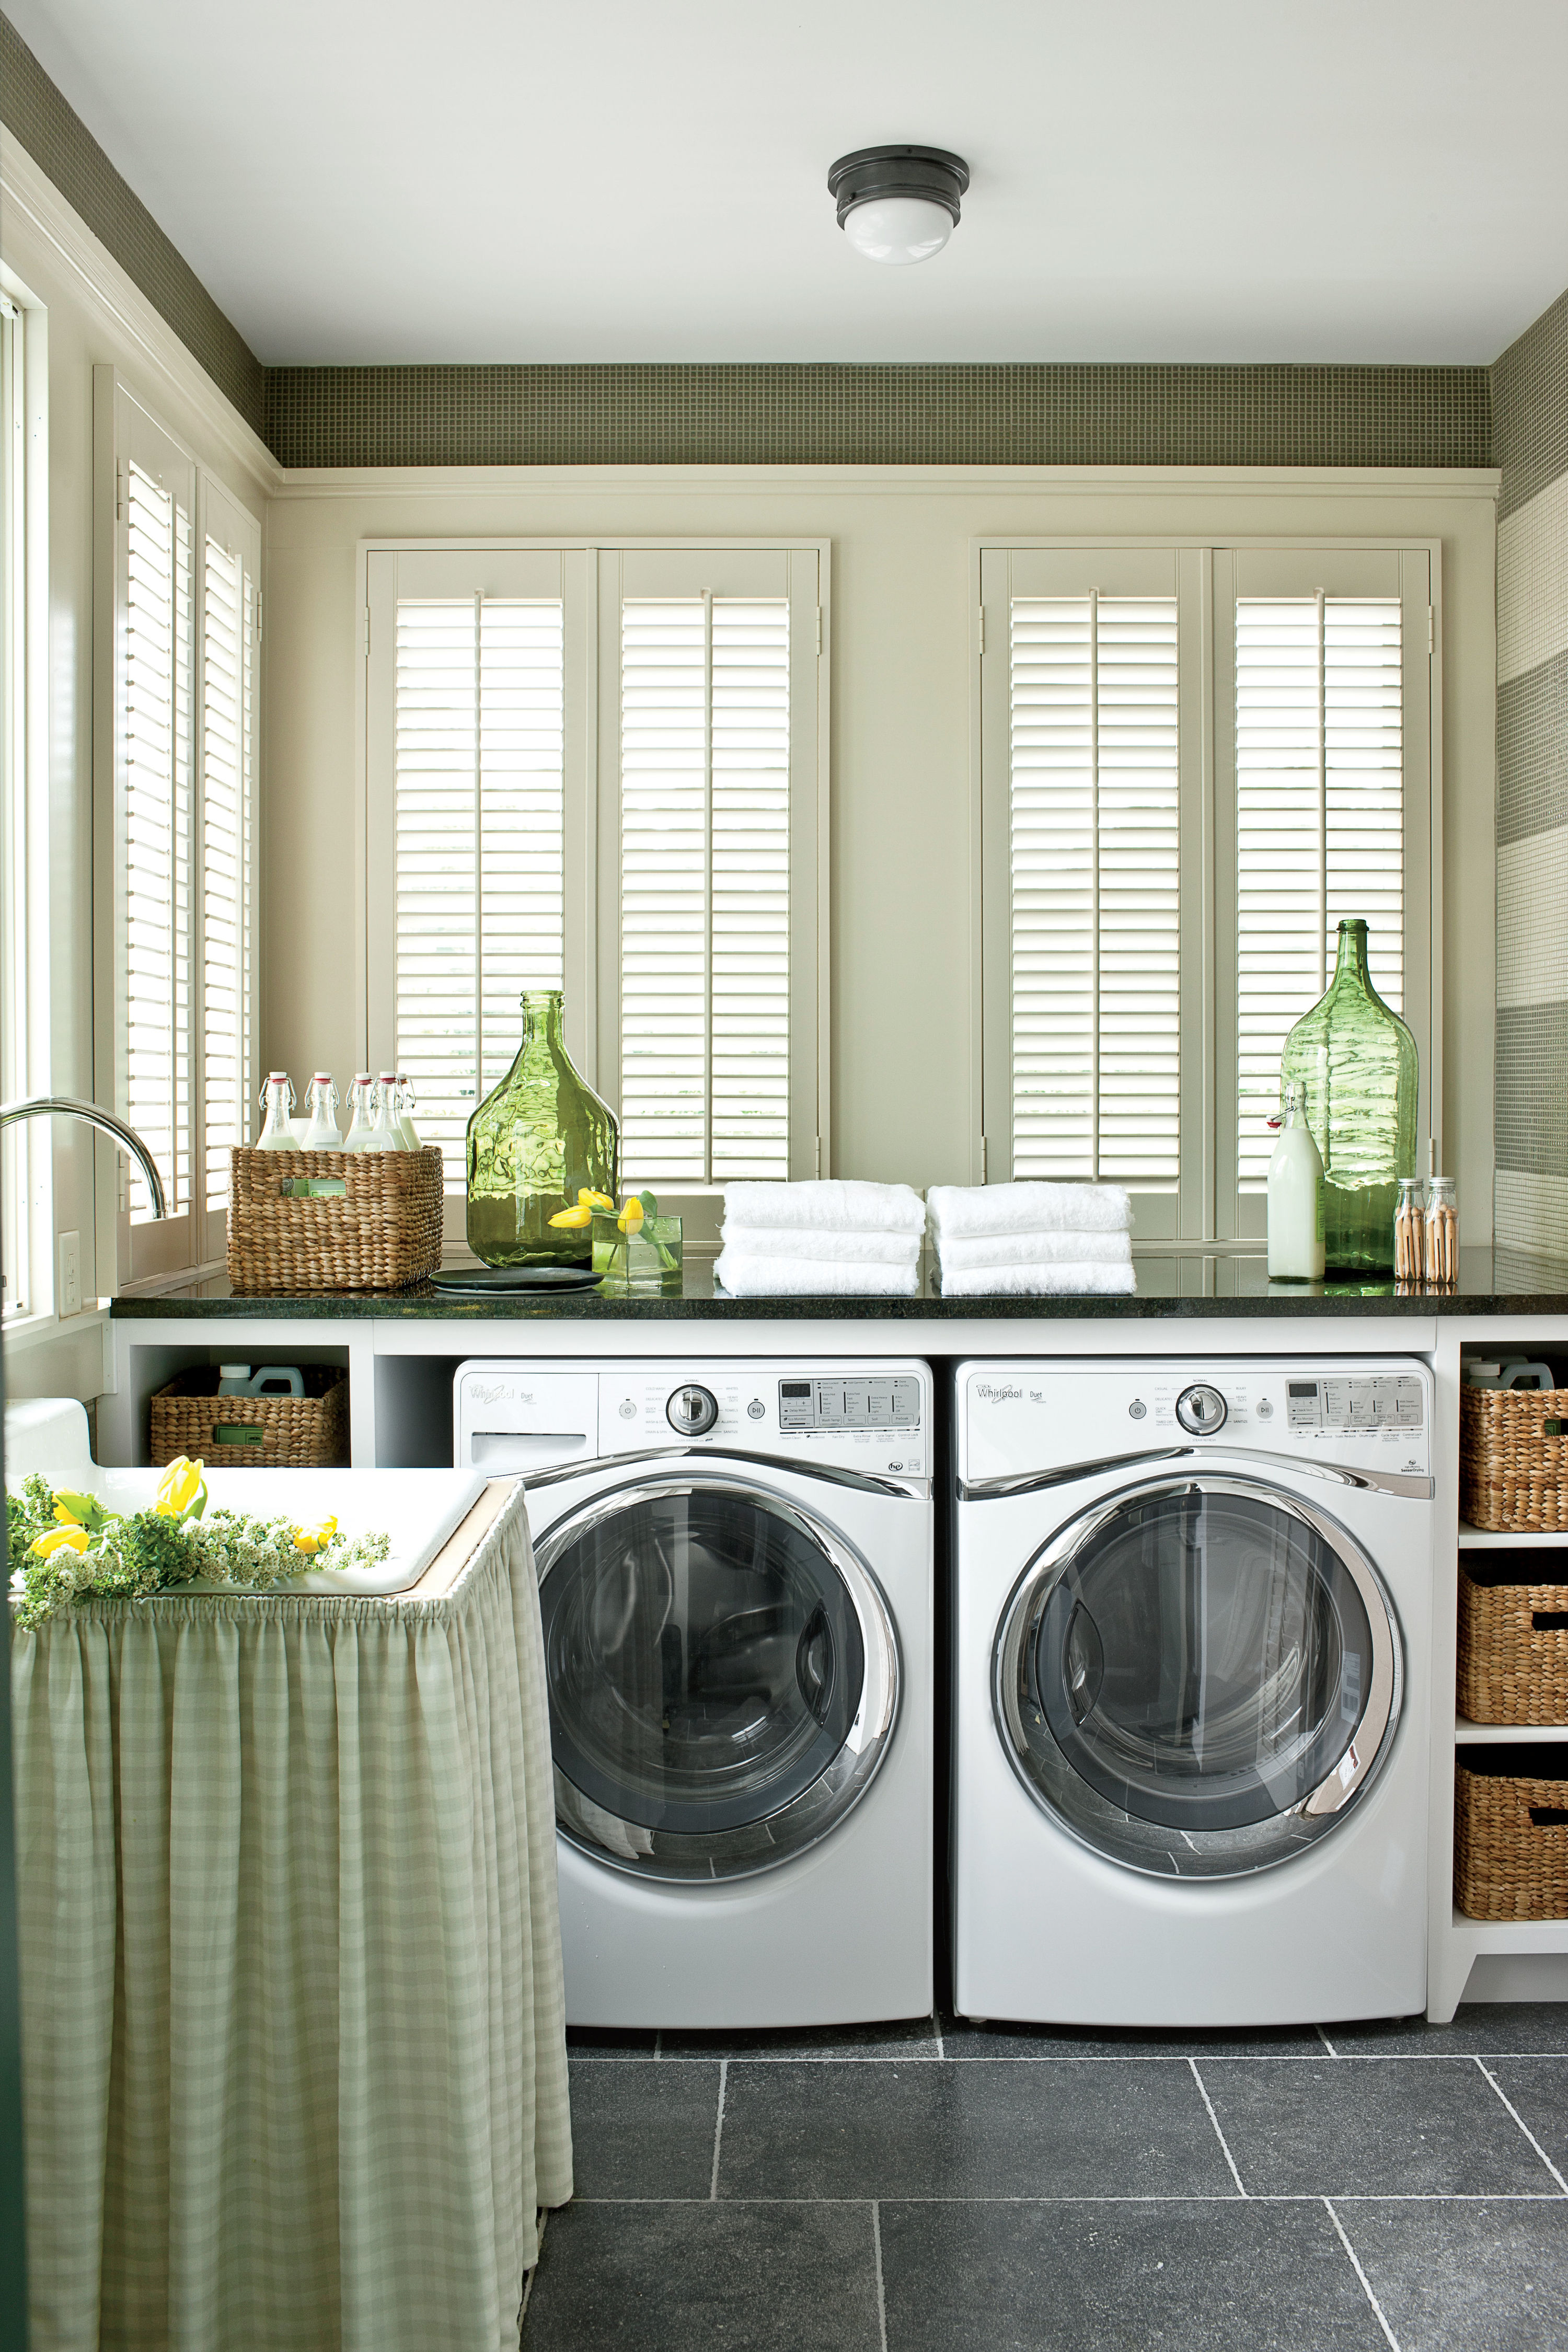 3 Tricks to Designing the Most Efficient Laundry Room